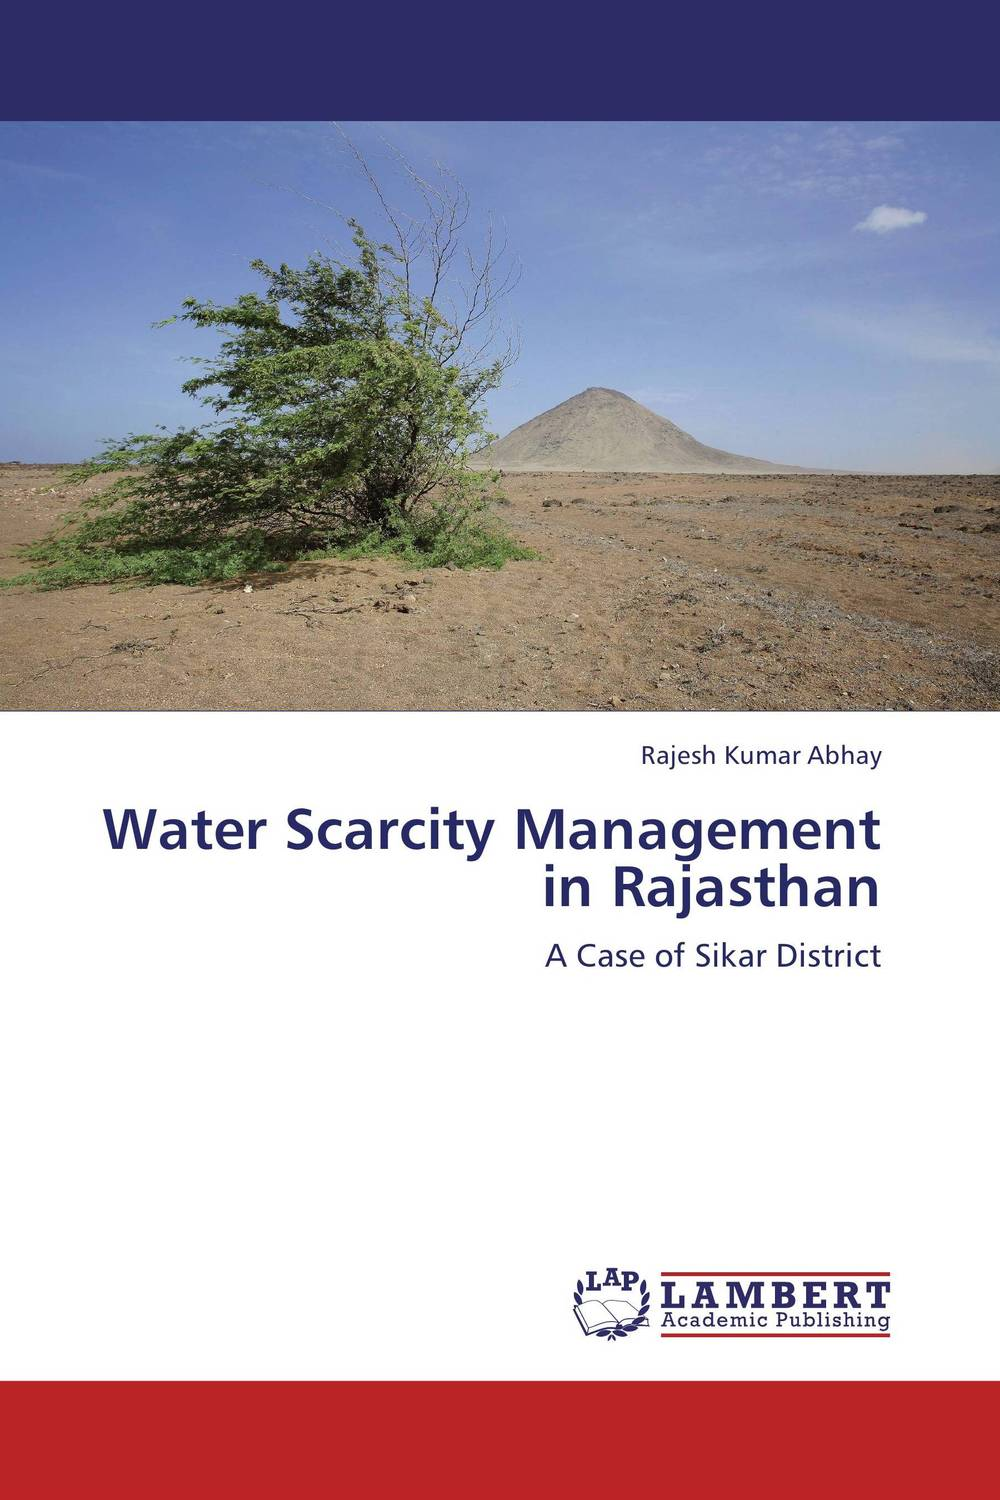 Water Scarcity Management in Rajasthan bride of the water god v 3